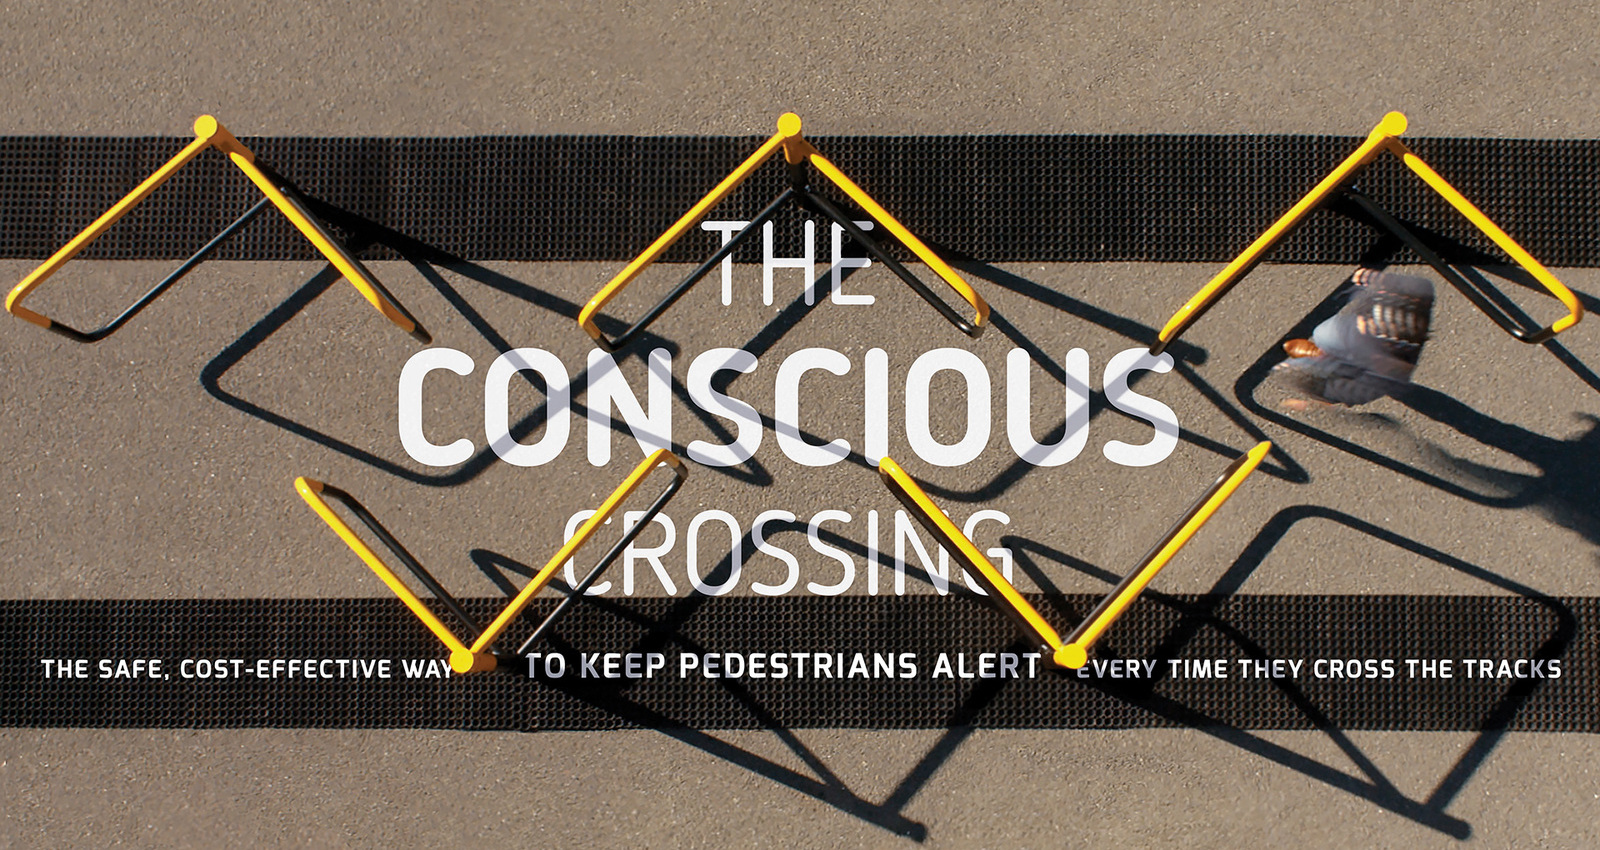 The Conscious Crossing